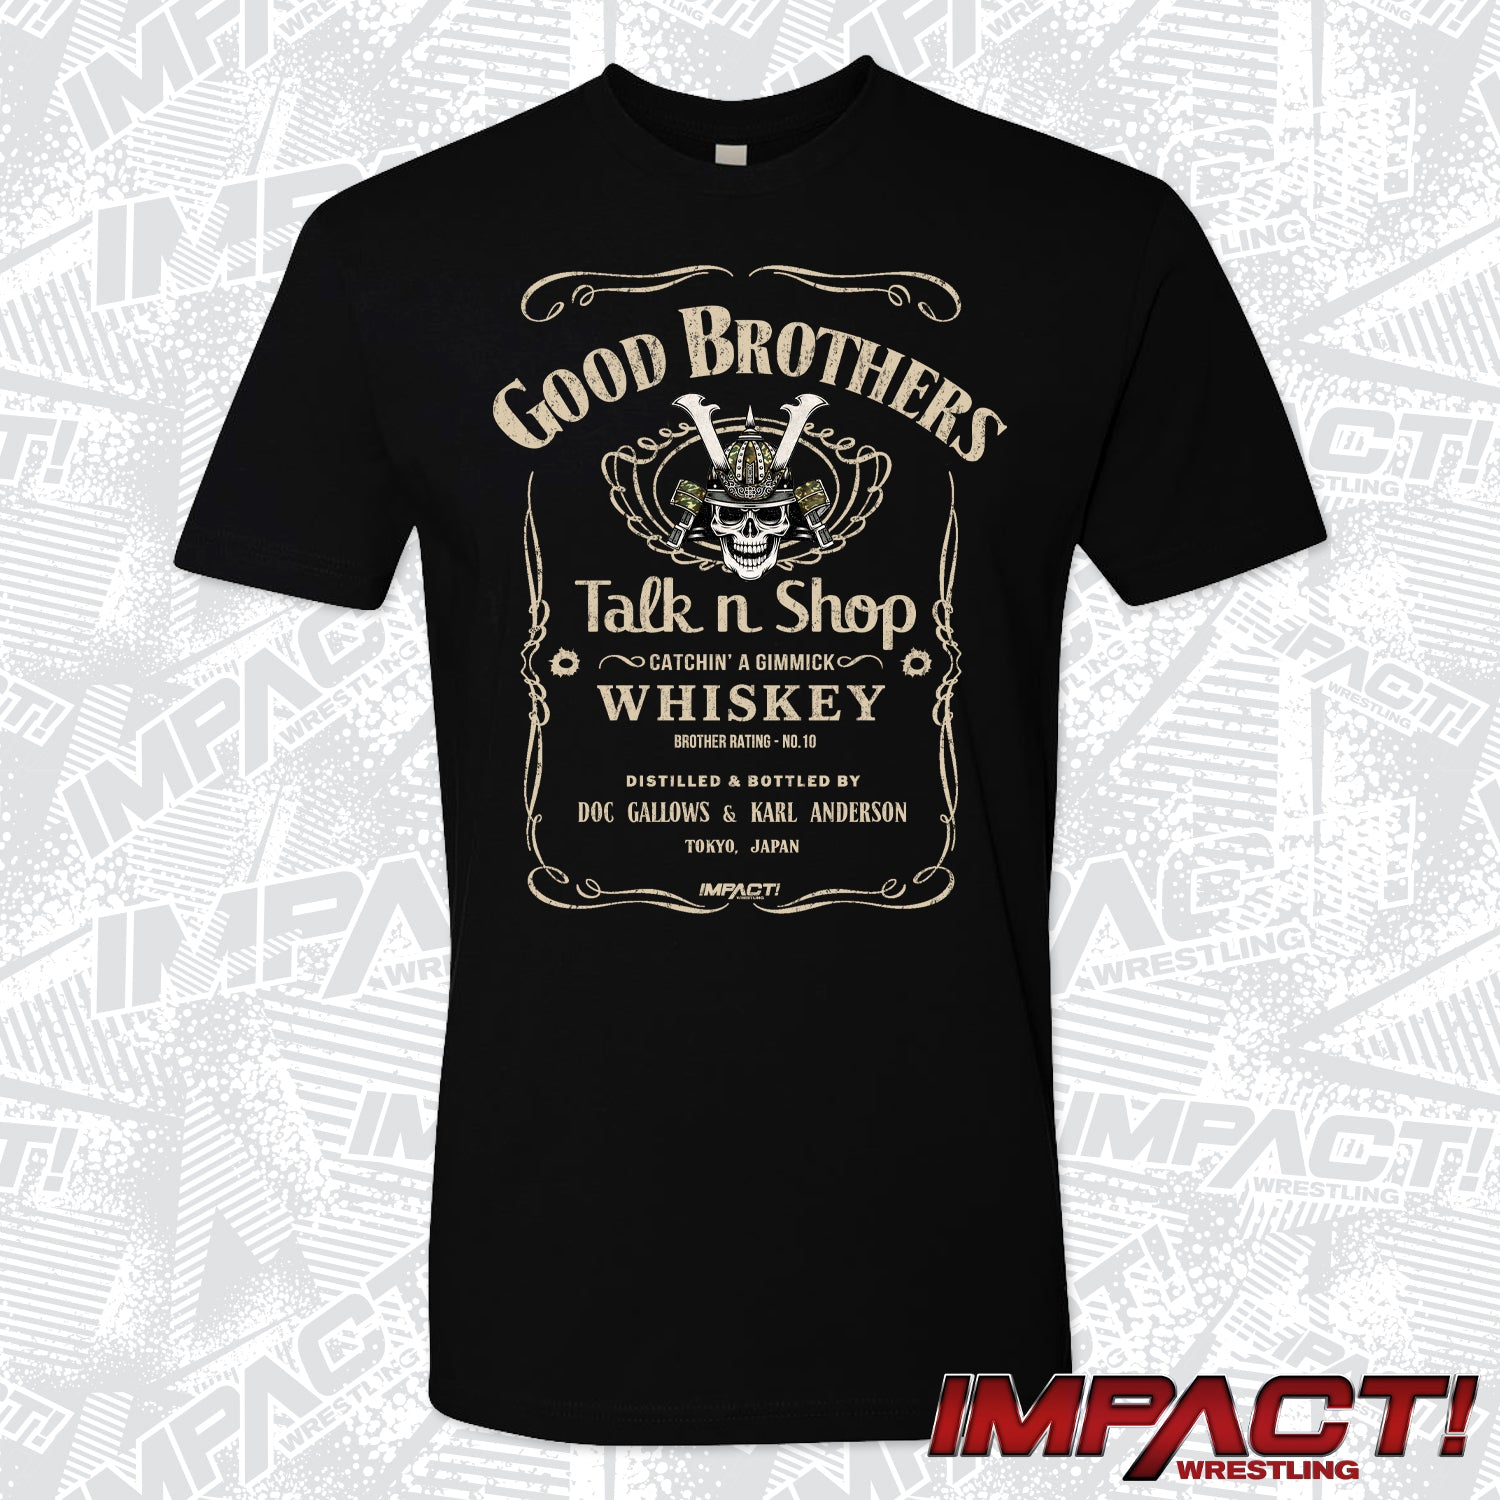 The Good Brothers 'Talk n Shop' Short Sleeve Tee - Black